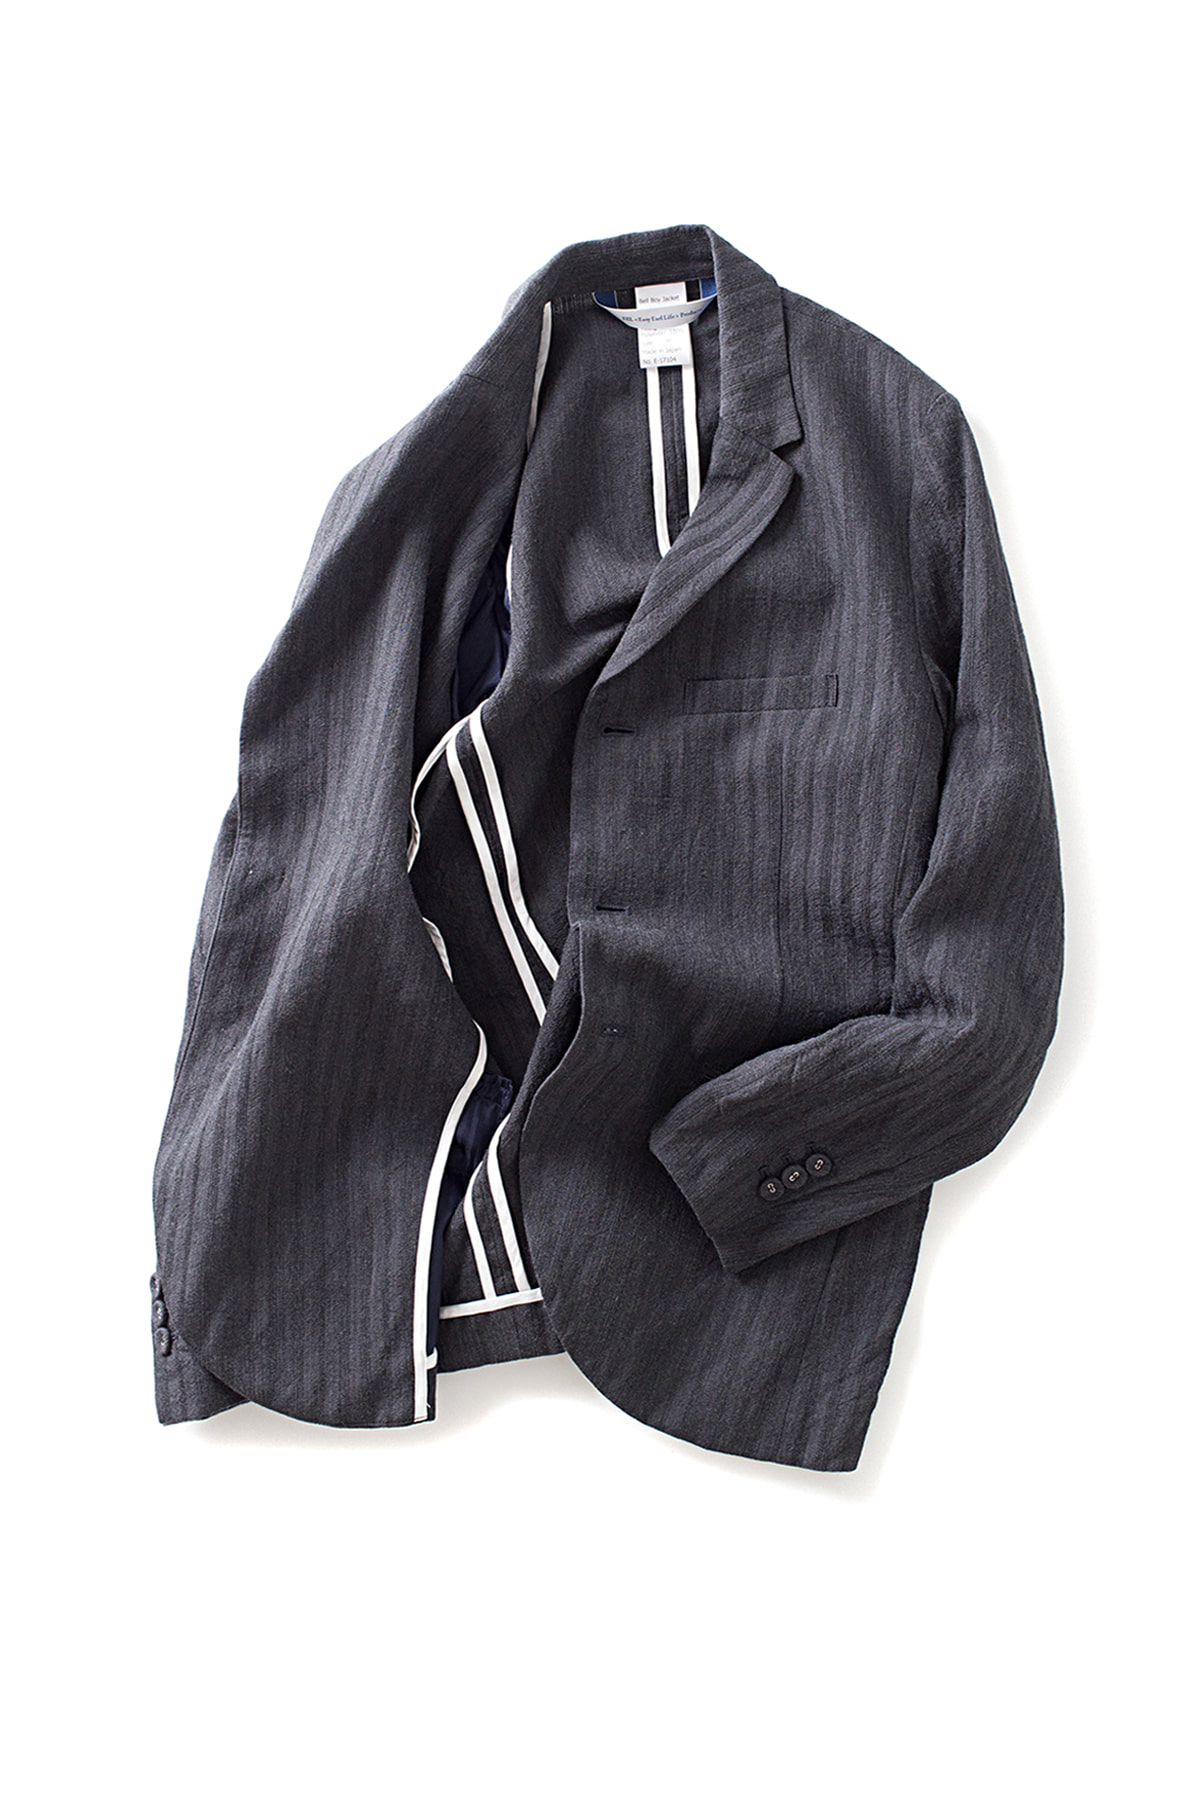 EEL : Bellboy Jacket (Charcoal Stripe)